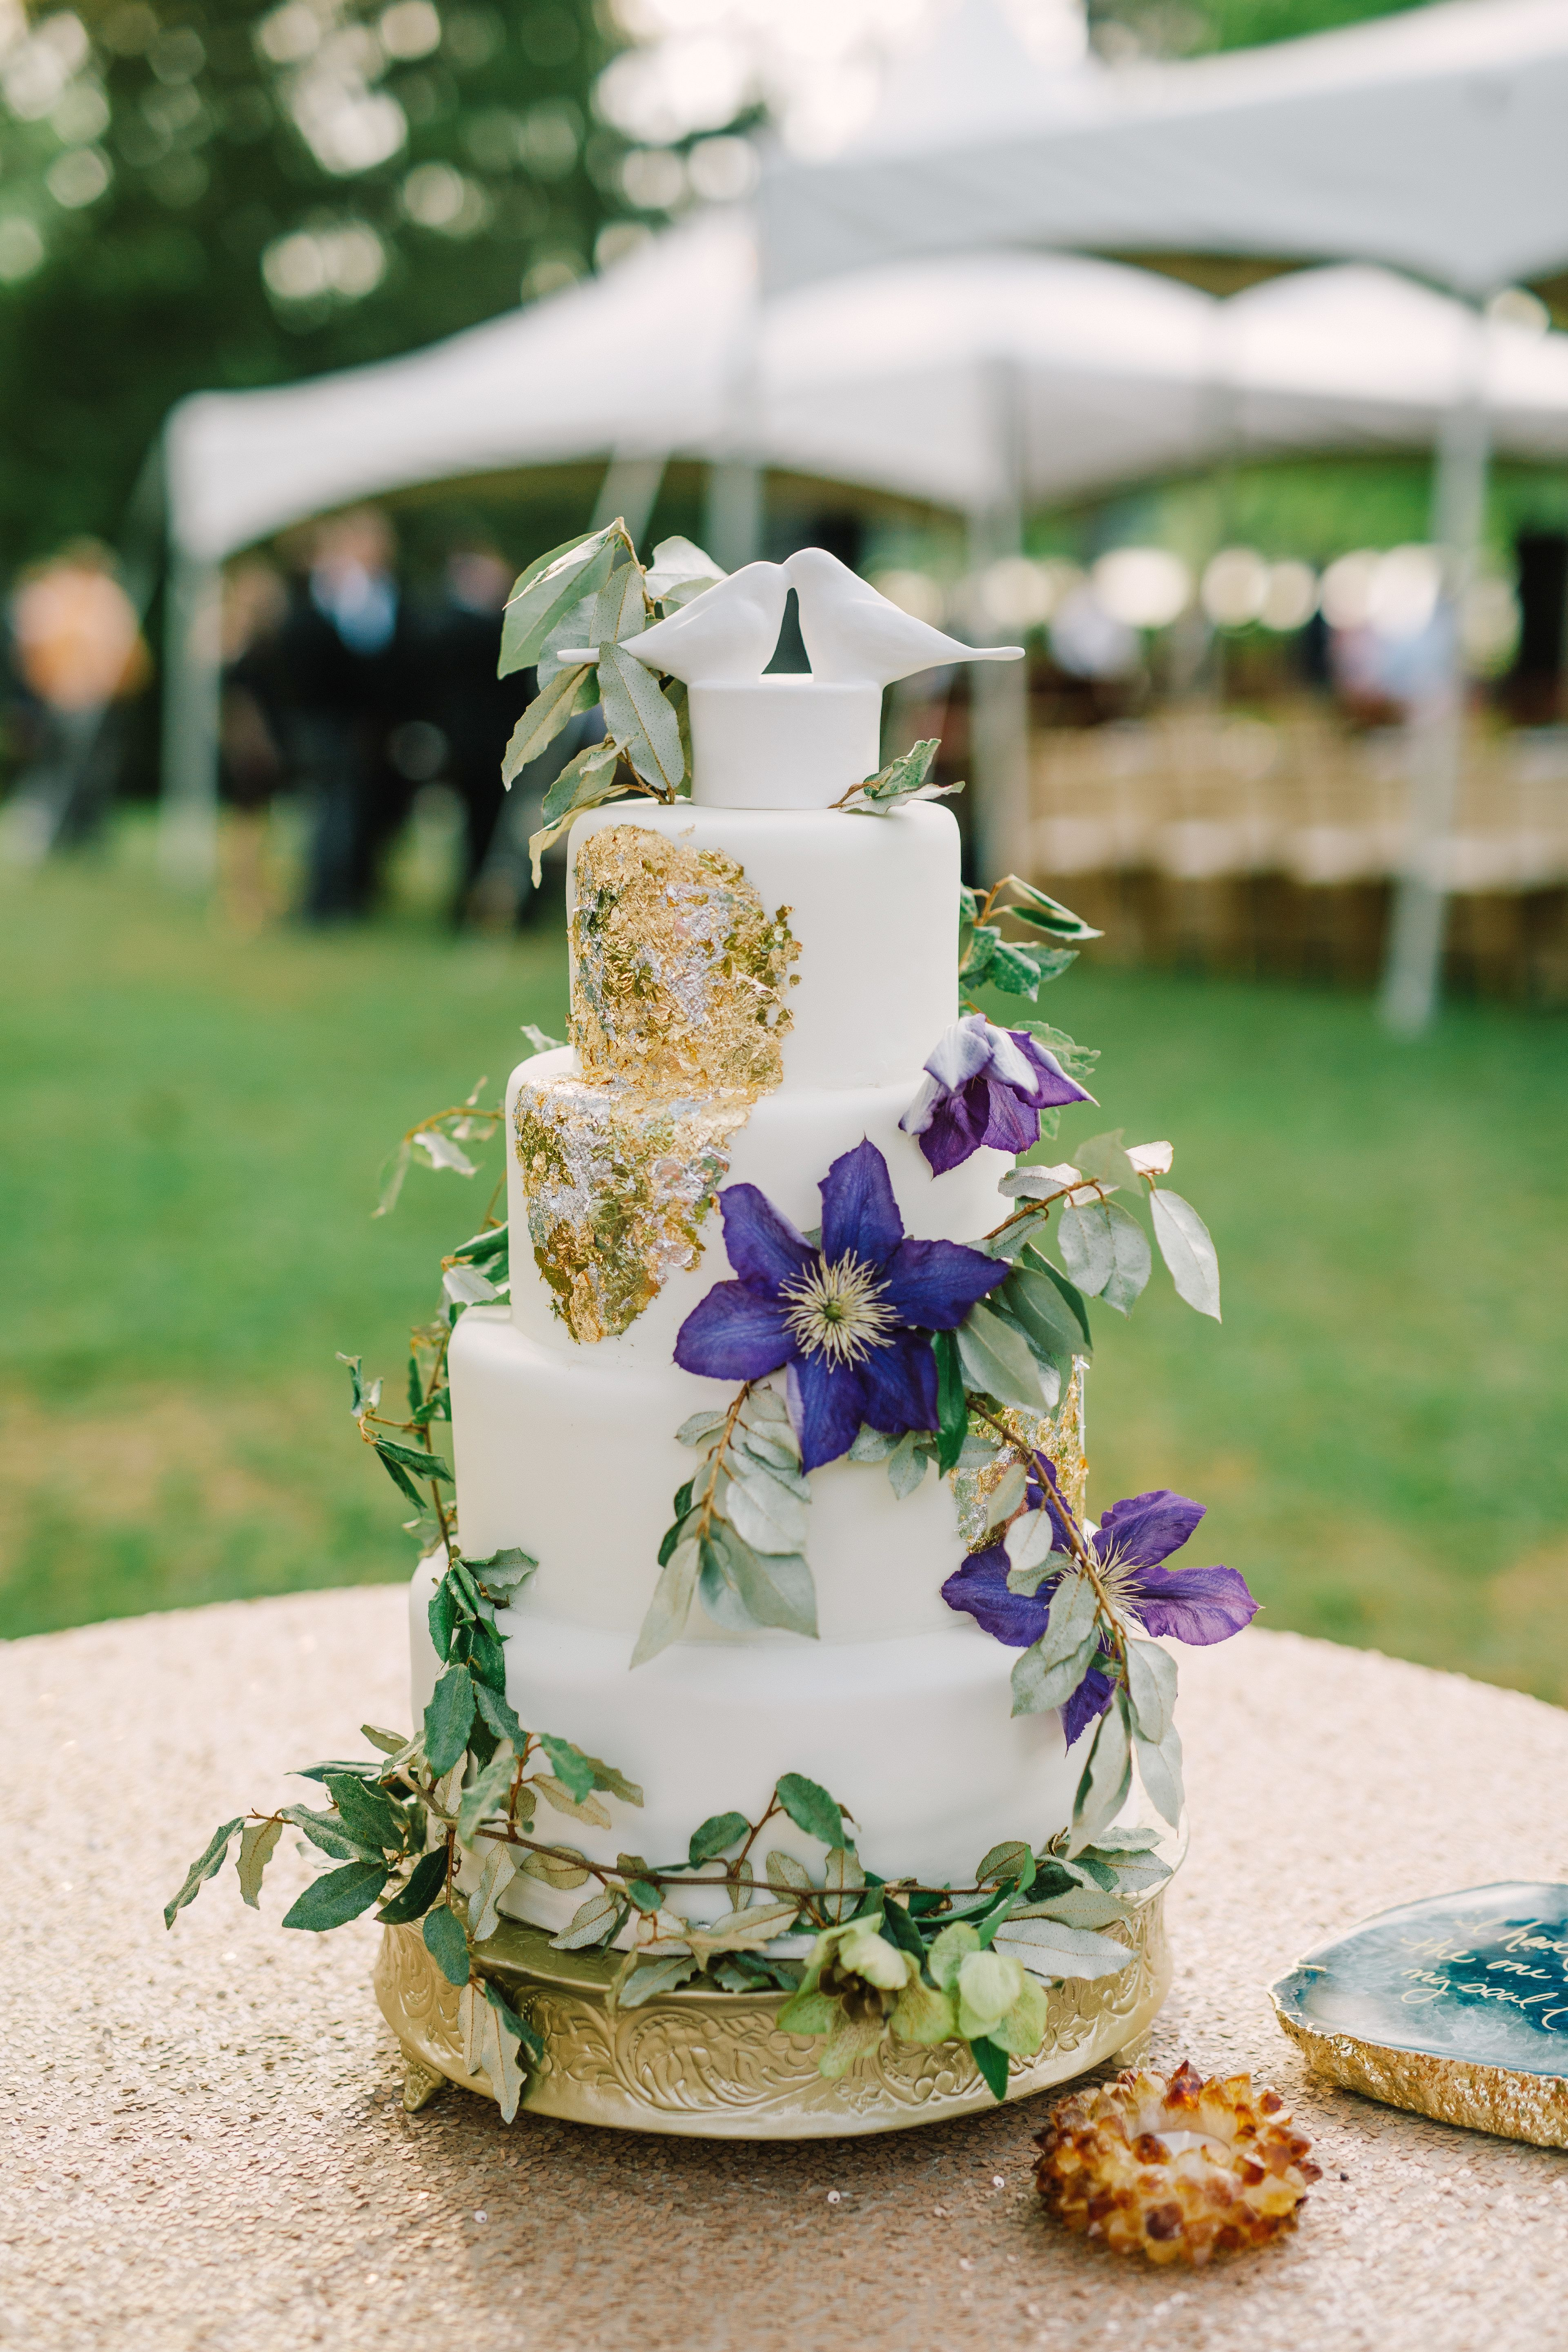 Nature Wedding Cakes  Natural Wedding Cake With Vines and Metallic Accent